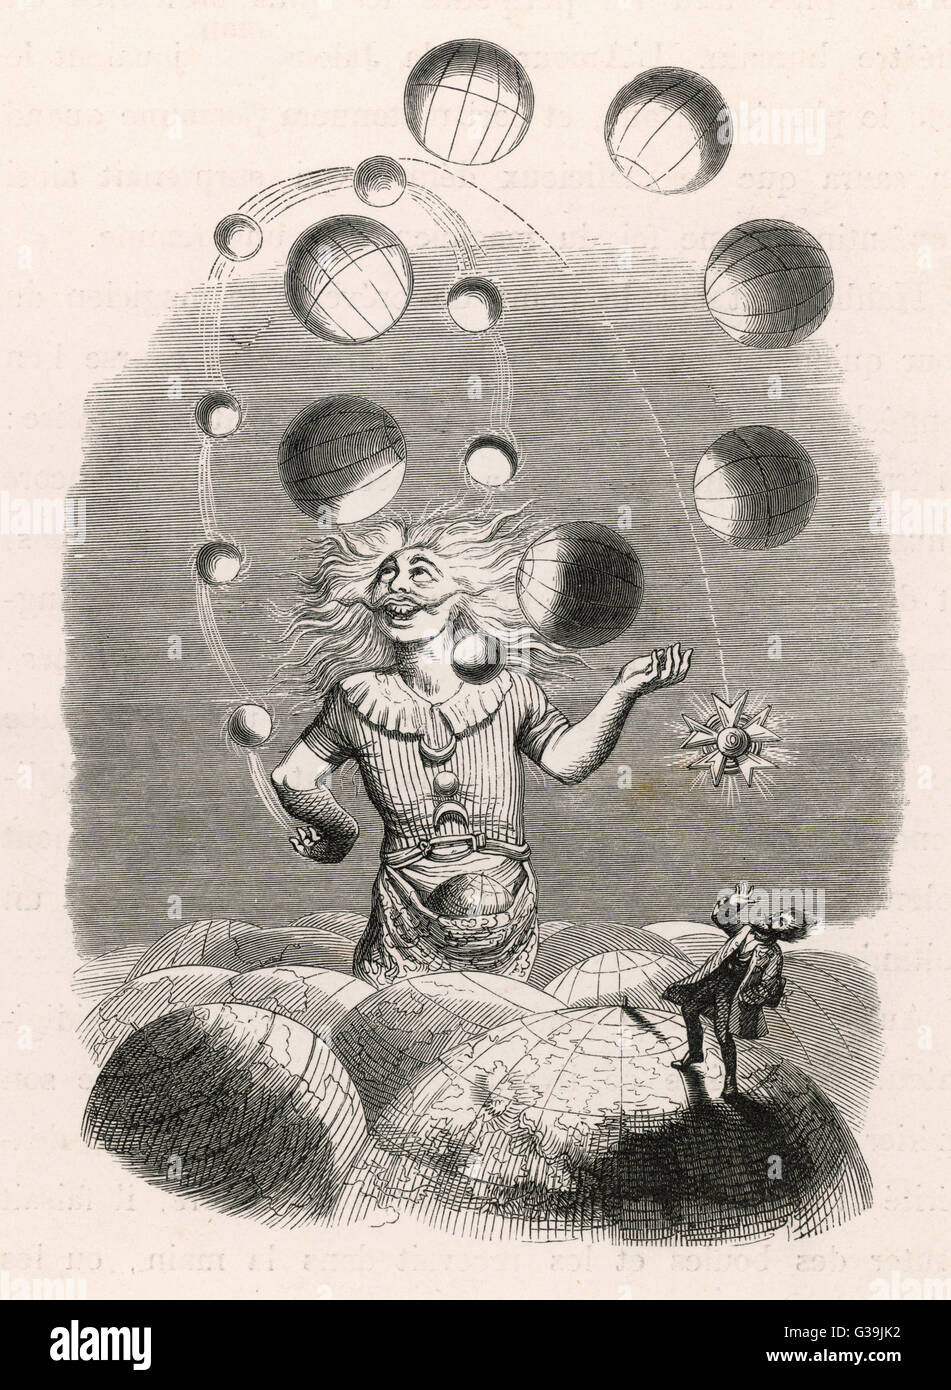 God depicted as a juggler,  amusing himself with the  worlds he has created        Date: 1841 - Stock Image